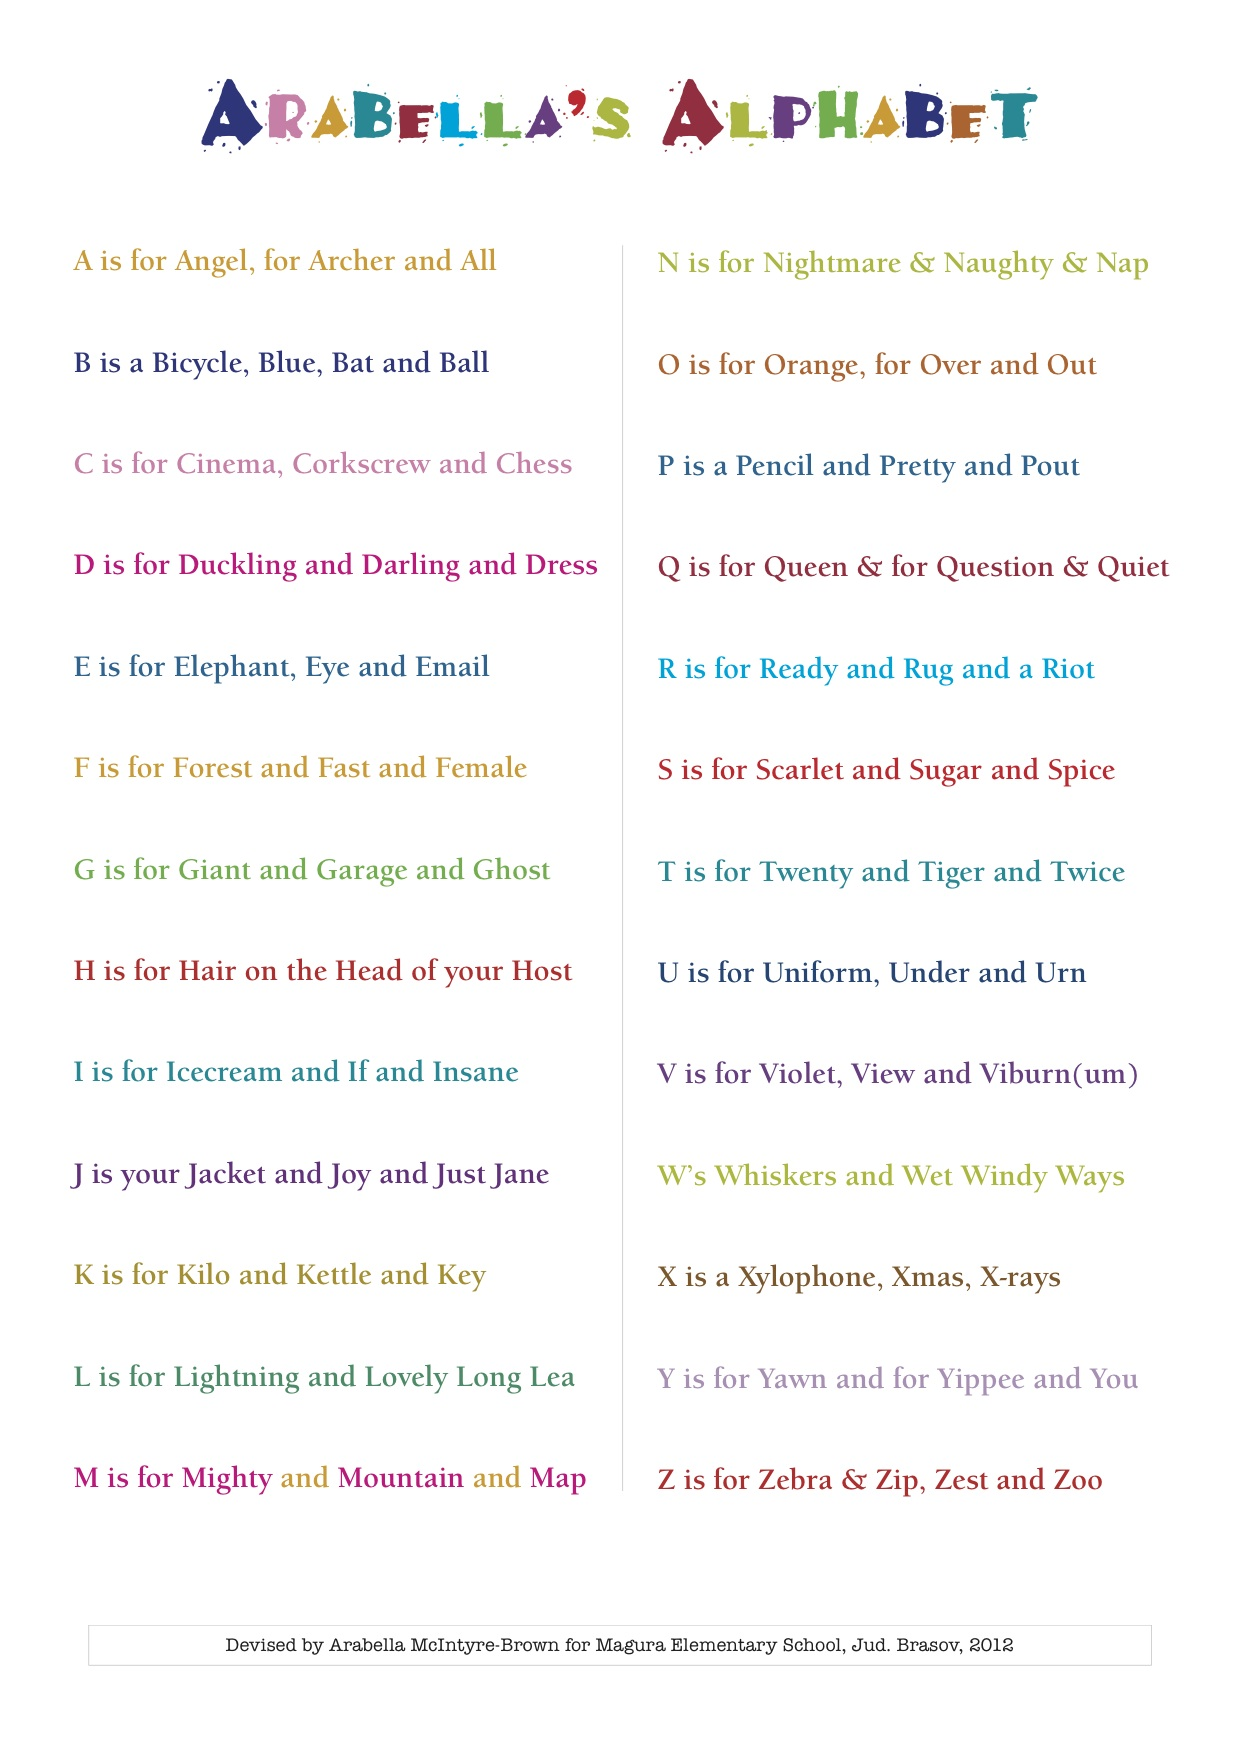 English alphabet rhyming couplets